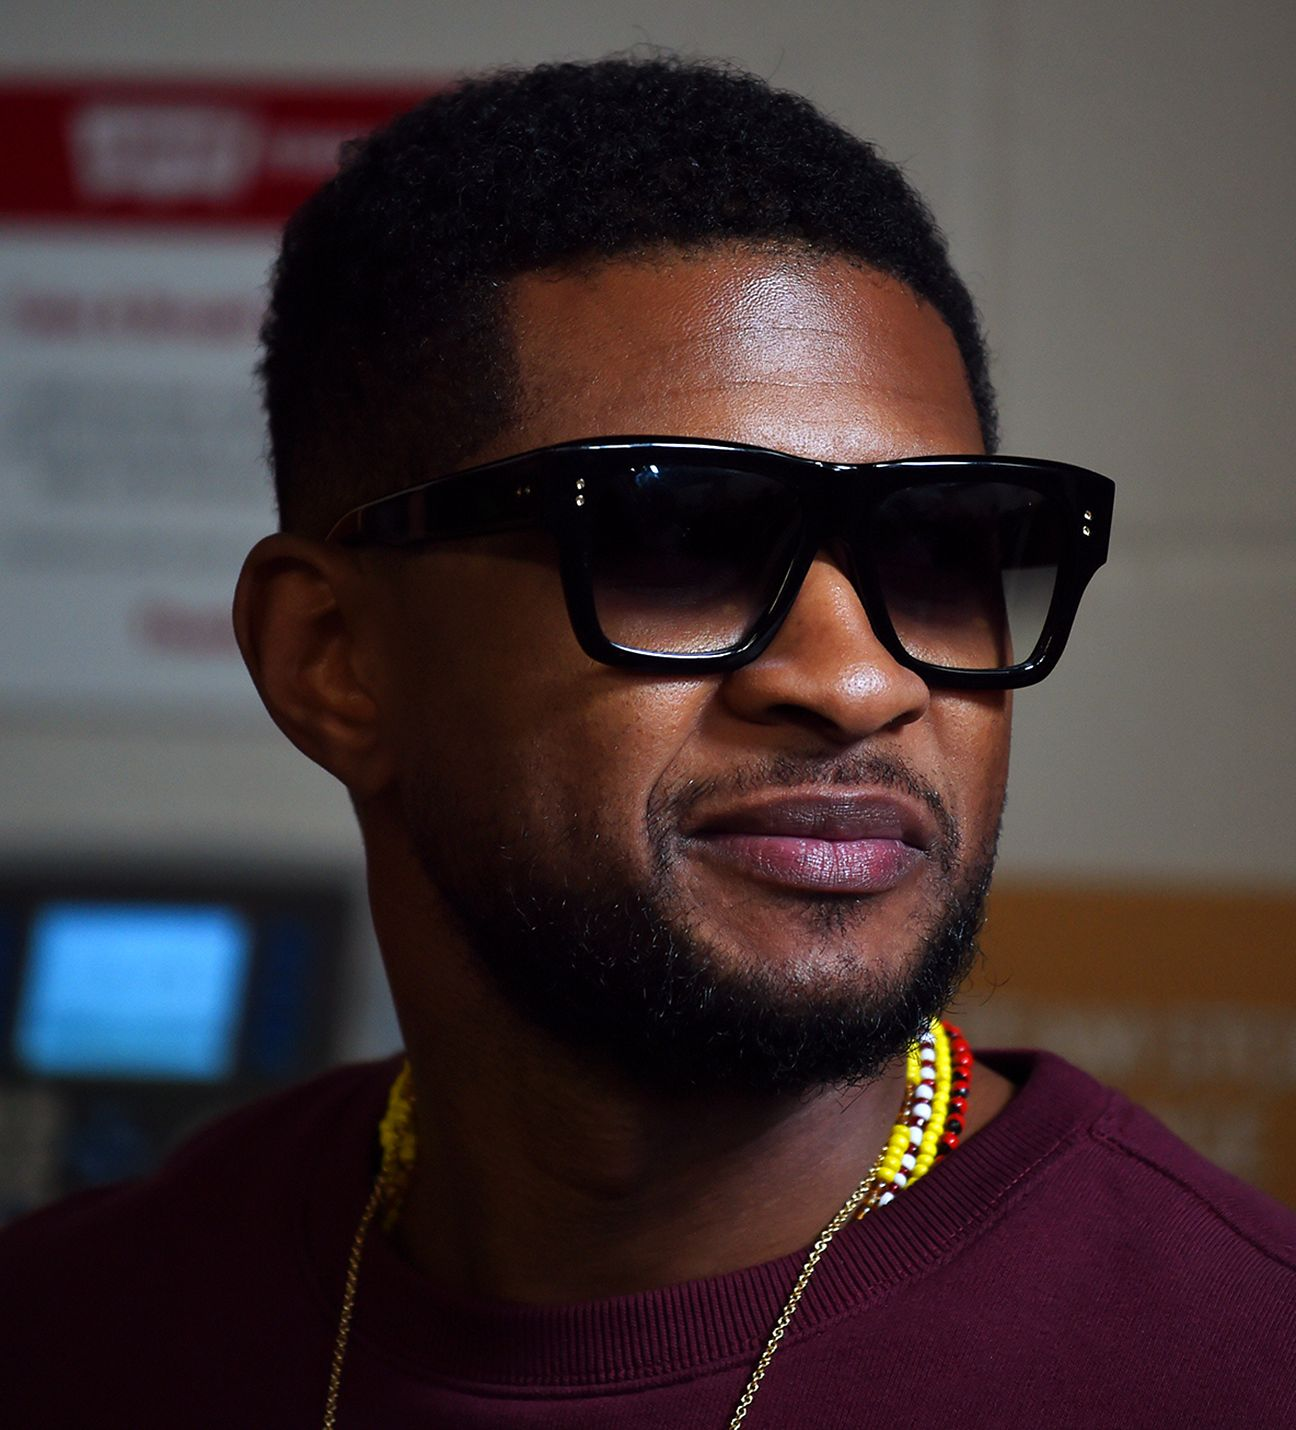 Usher roller shoes video - 4 15 P M Usher In The House